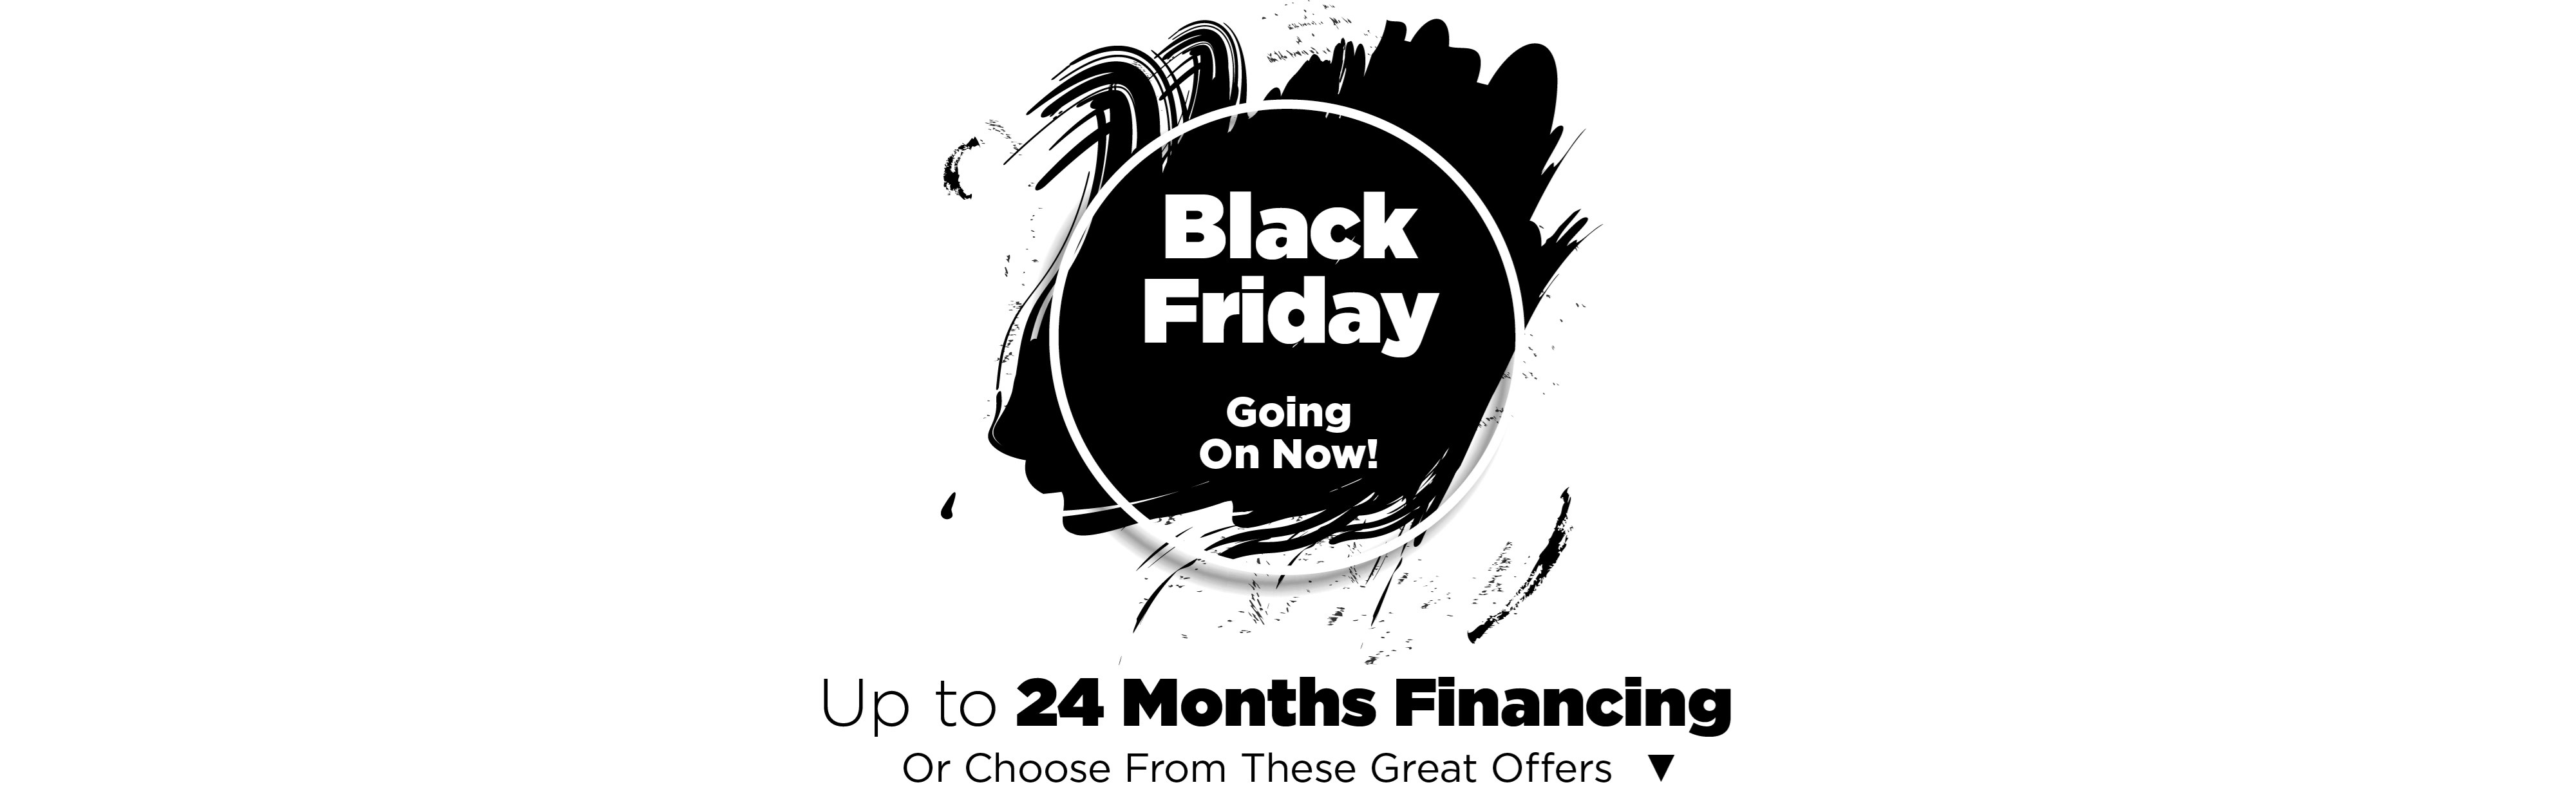 Up to 24 months financing or vendor promotions; see store for details.